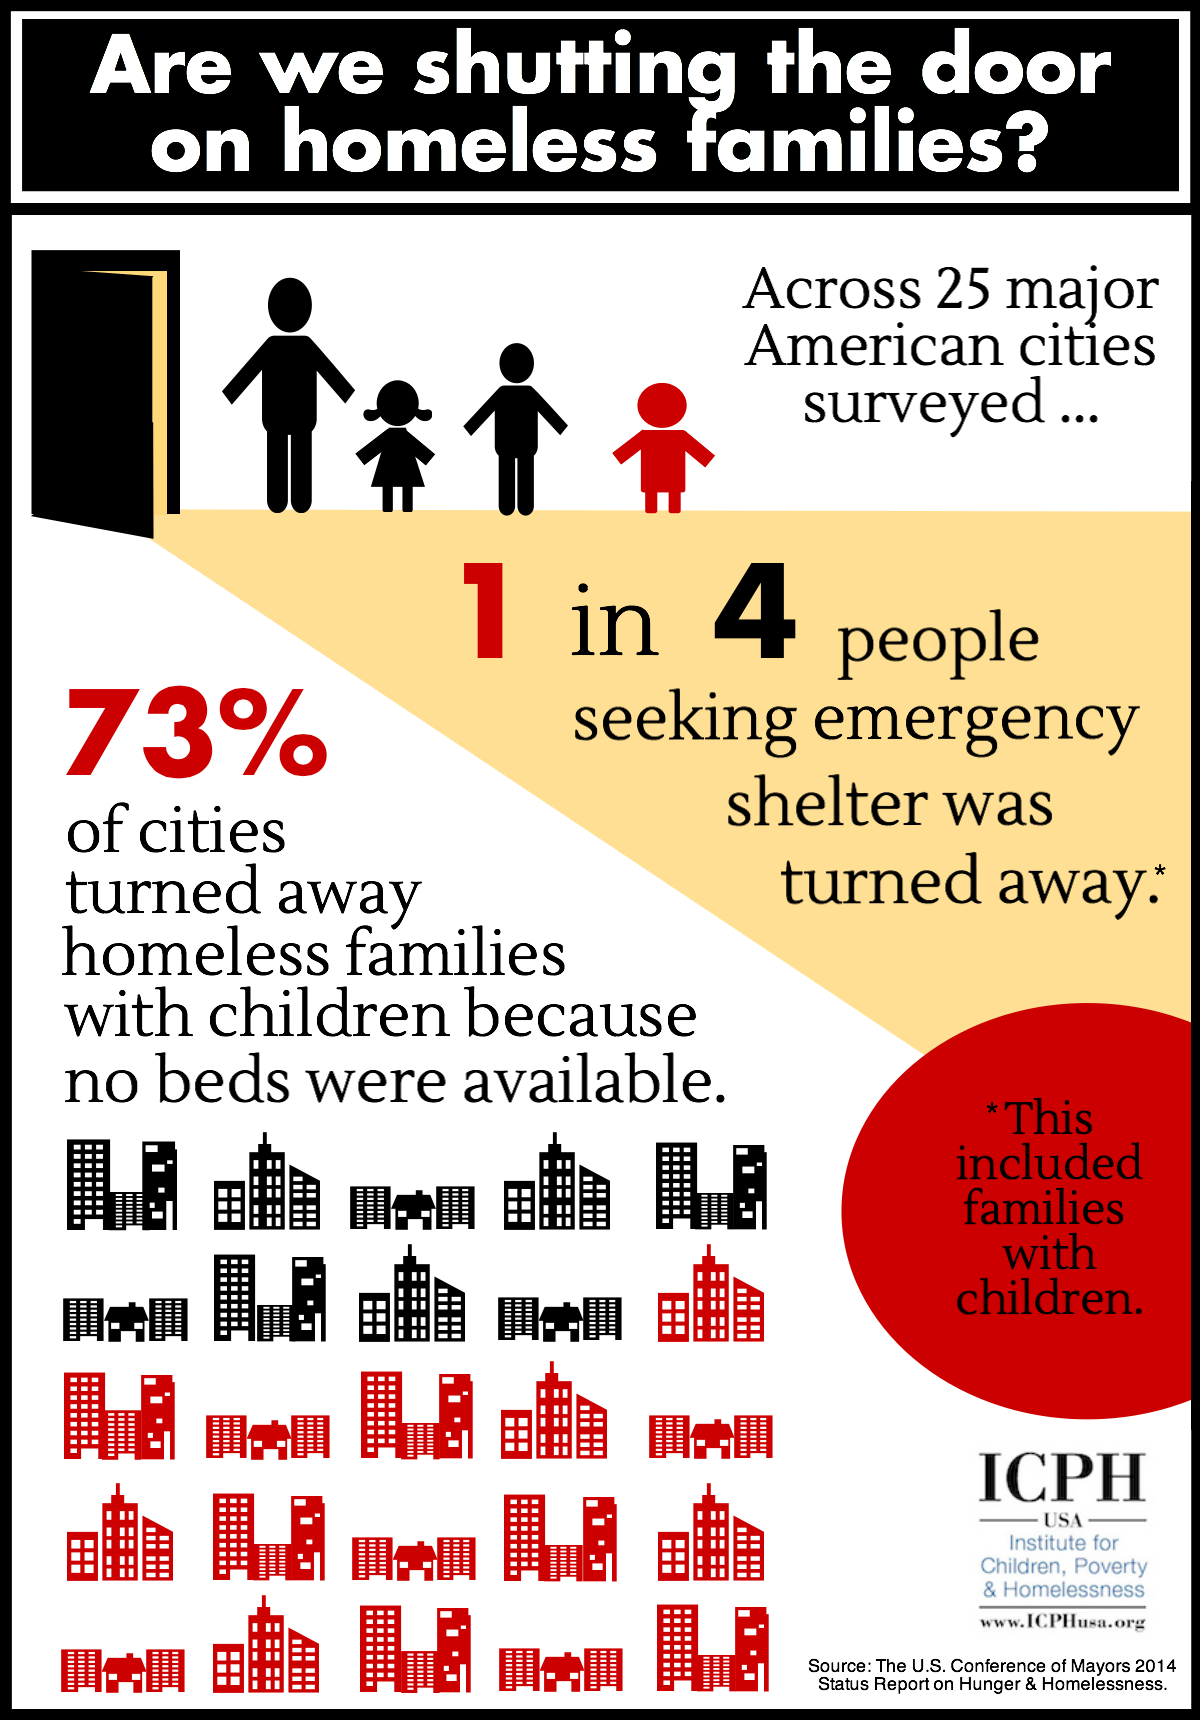 Infographic by the Institute for Children, Poverty & Homelessness